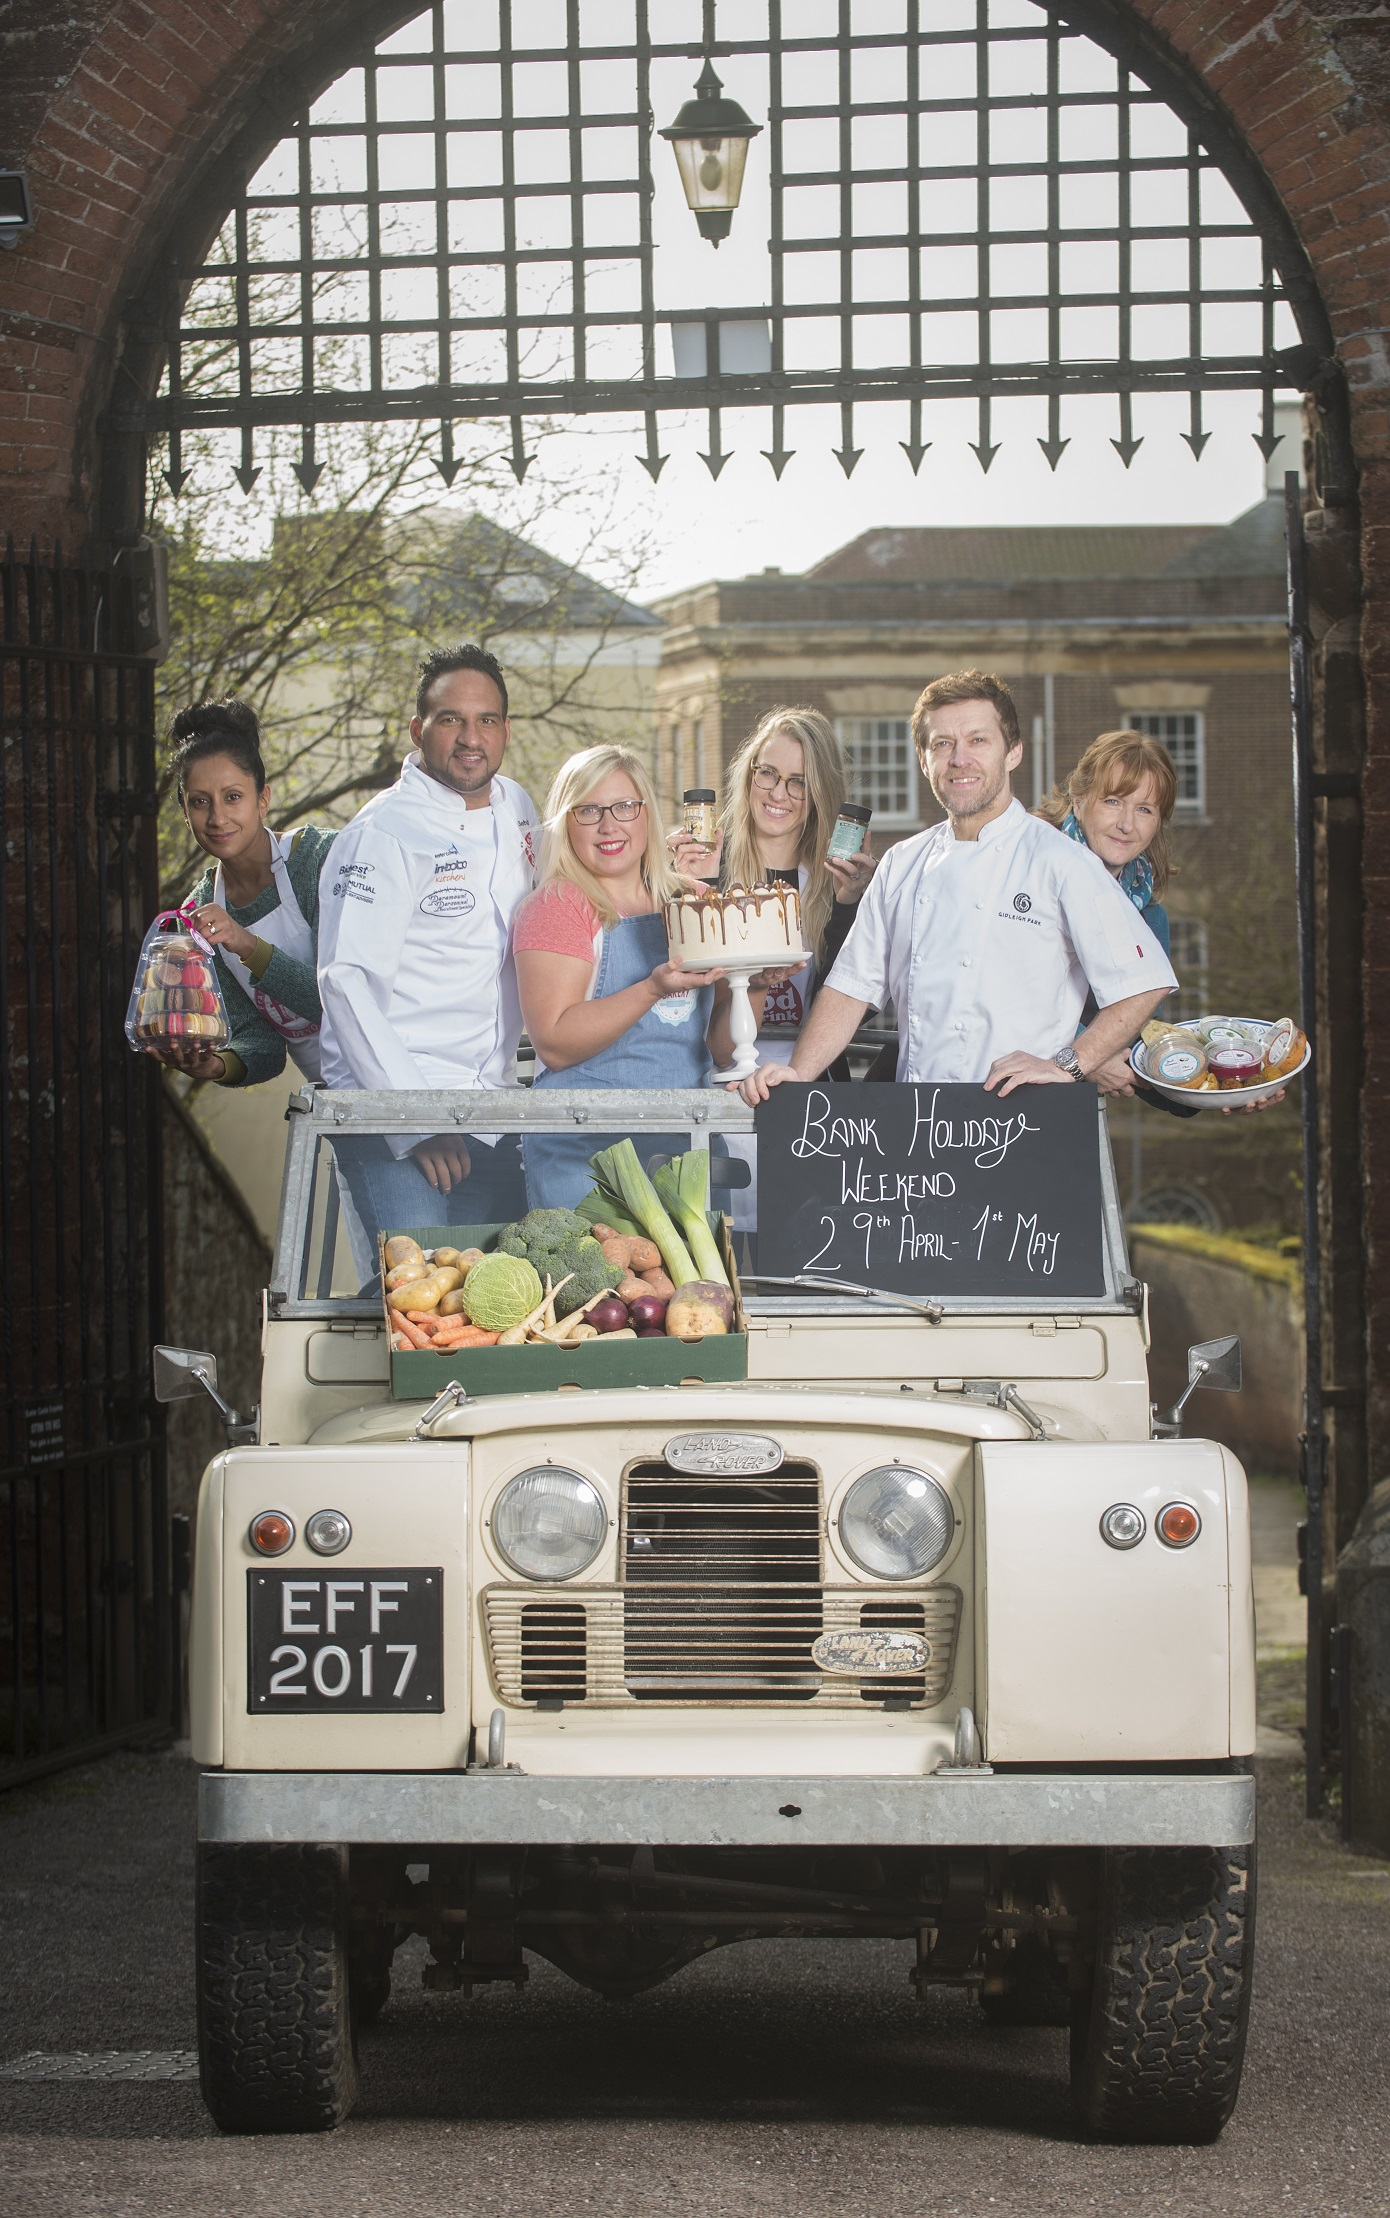 Andie Stanstell, Michael Caines MBE, Charlie Deeley, Caroline Little, Michael Wignall and Helen Evans